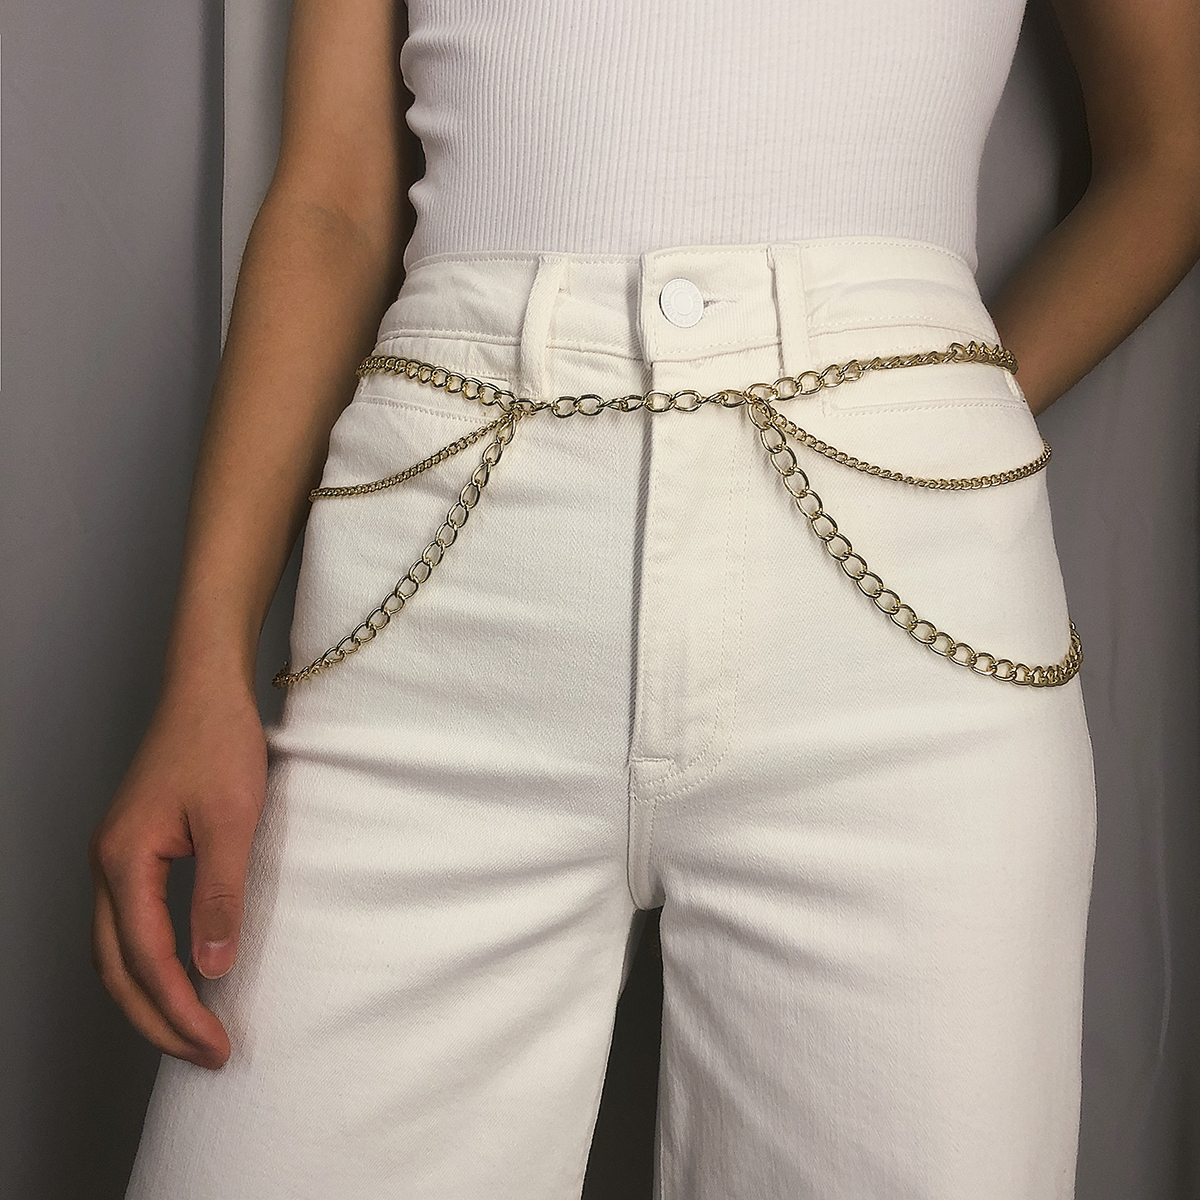 Ingemark Fashion Gold Color Belly Chain Belt Waist Beach Festival Outfit Chain Multi layer Tassel Sexy Boho Body Jewelry 2019